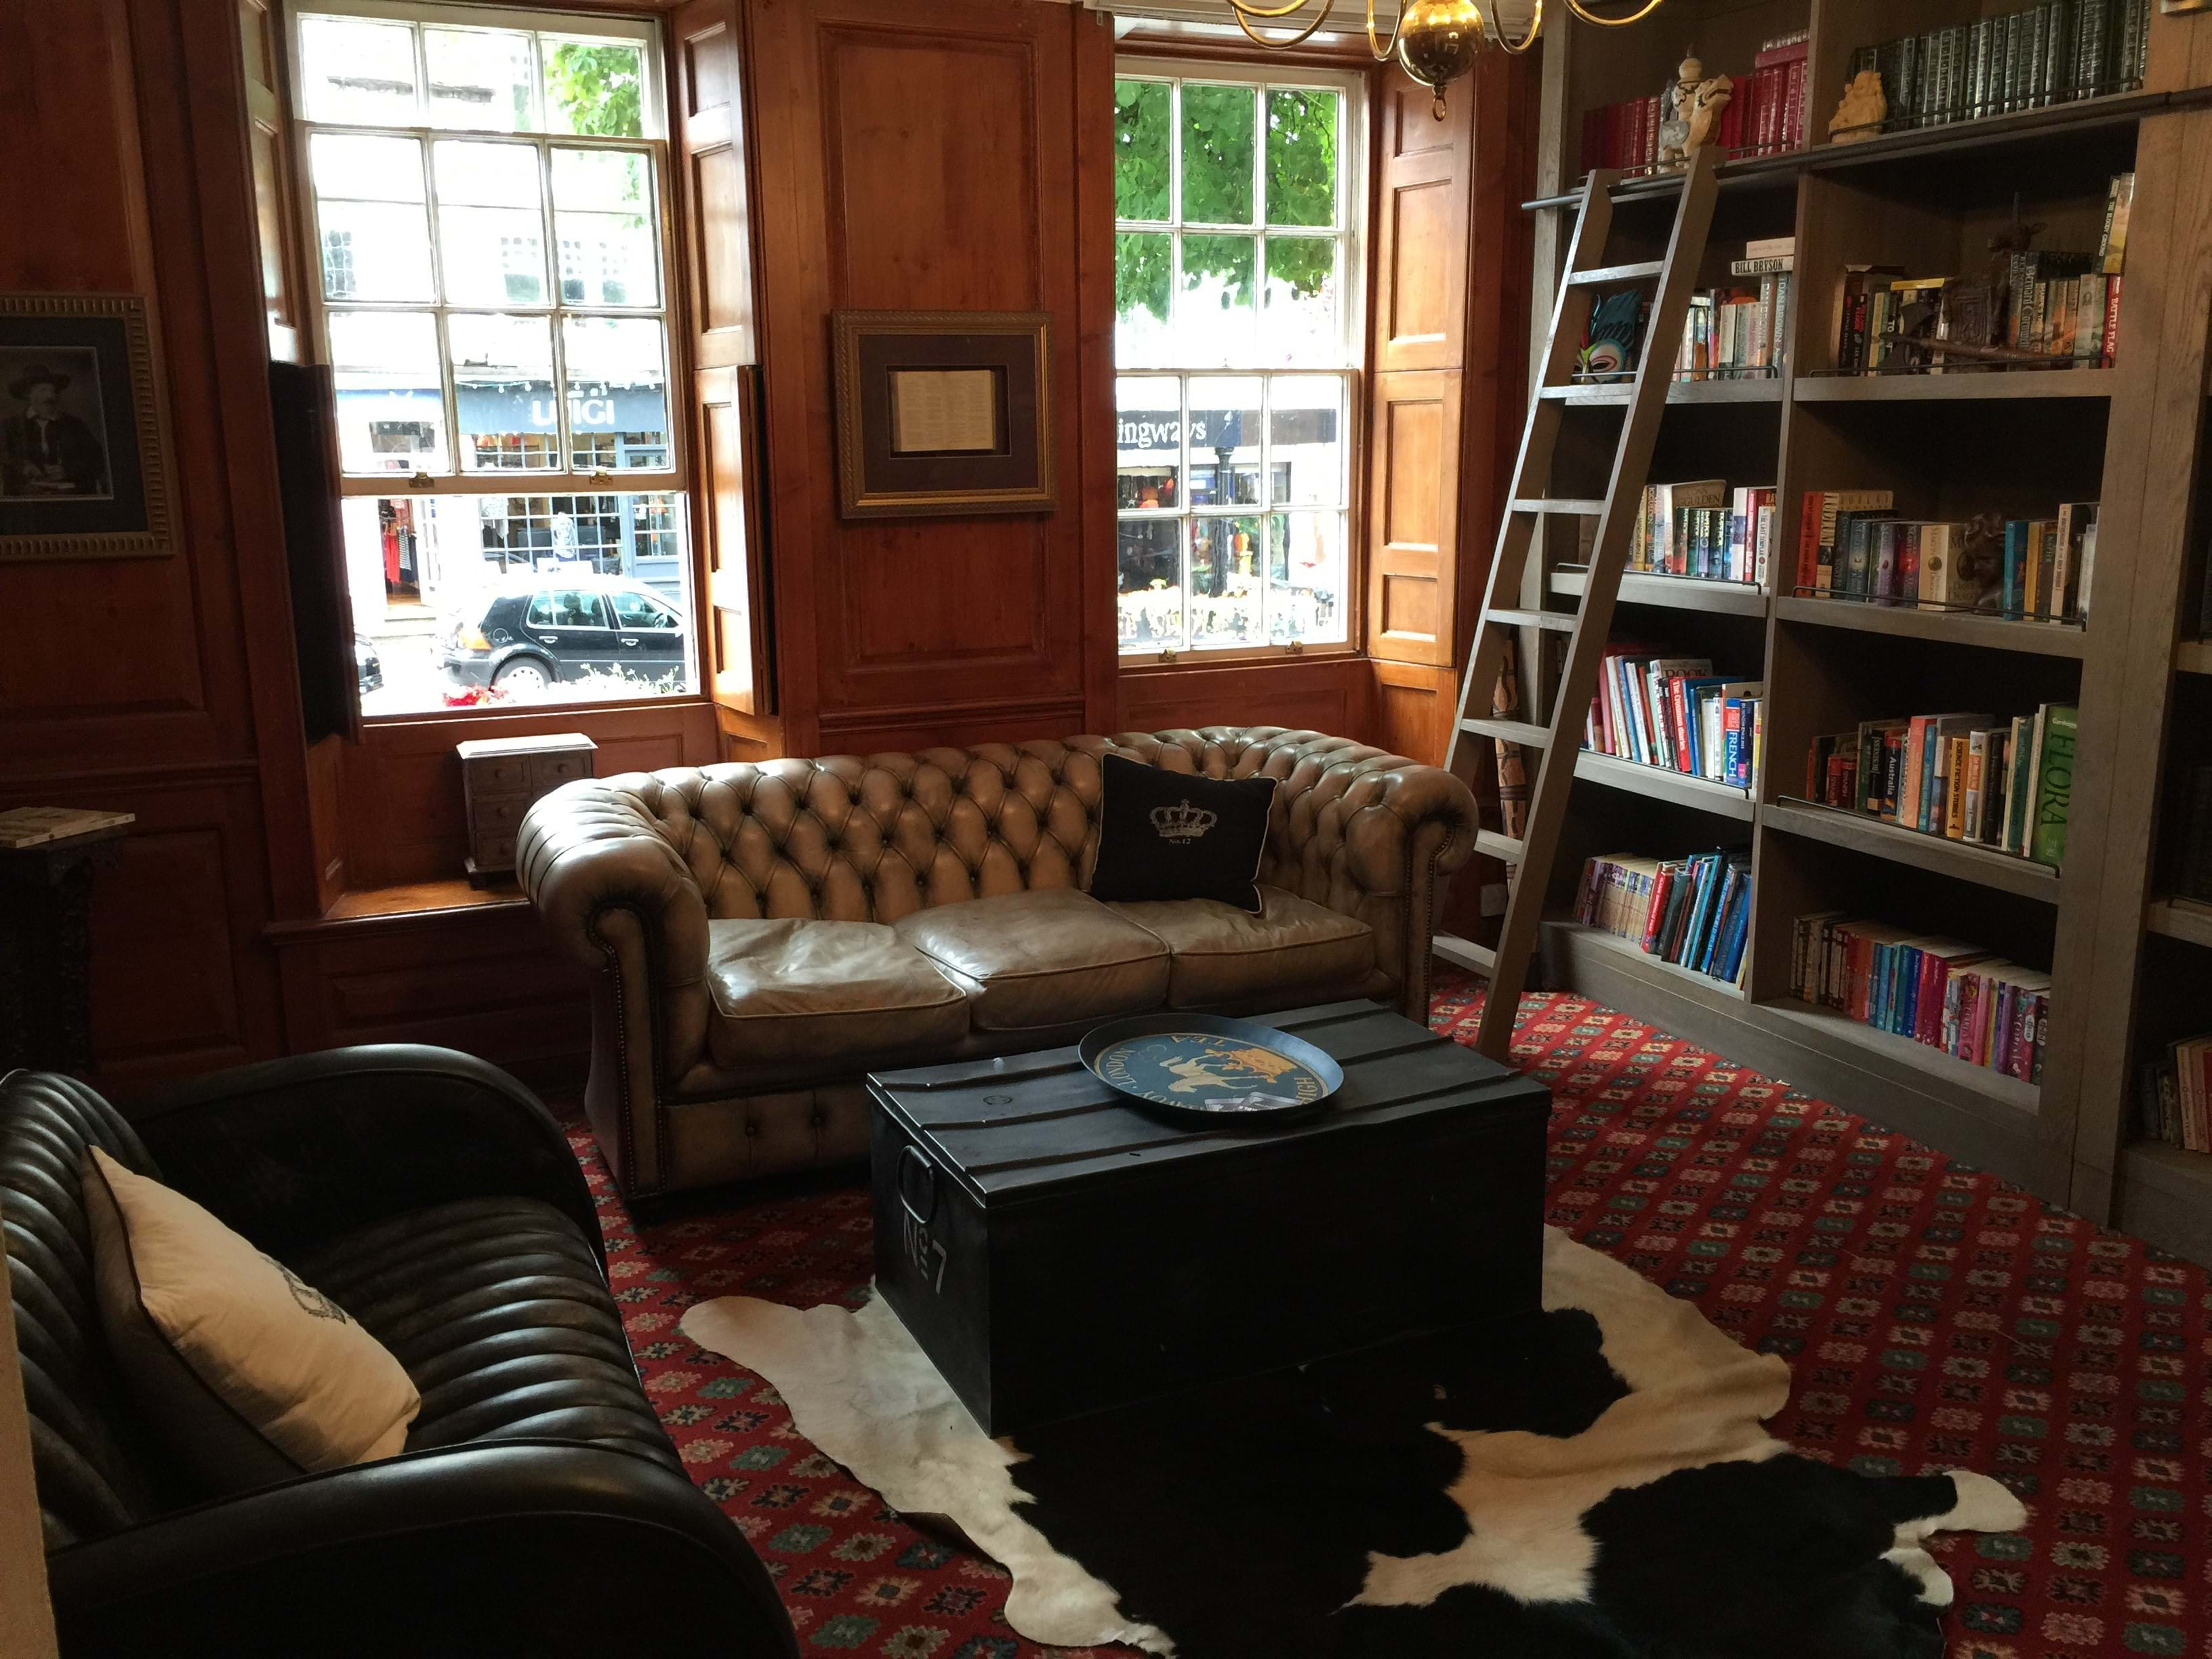 The Georgian House Hotel Library